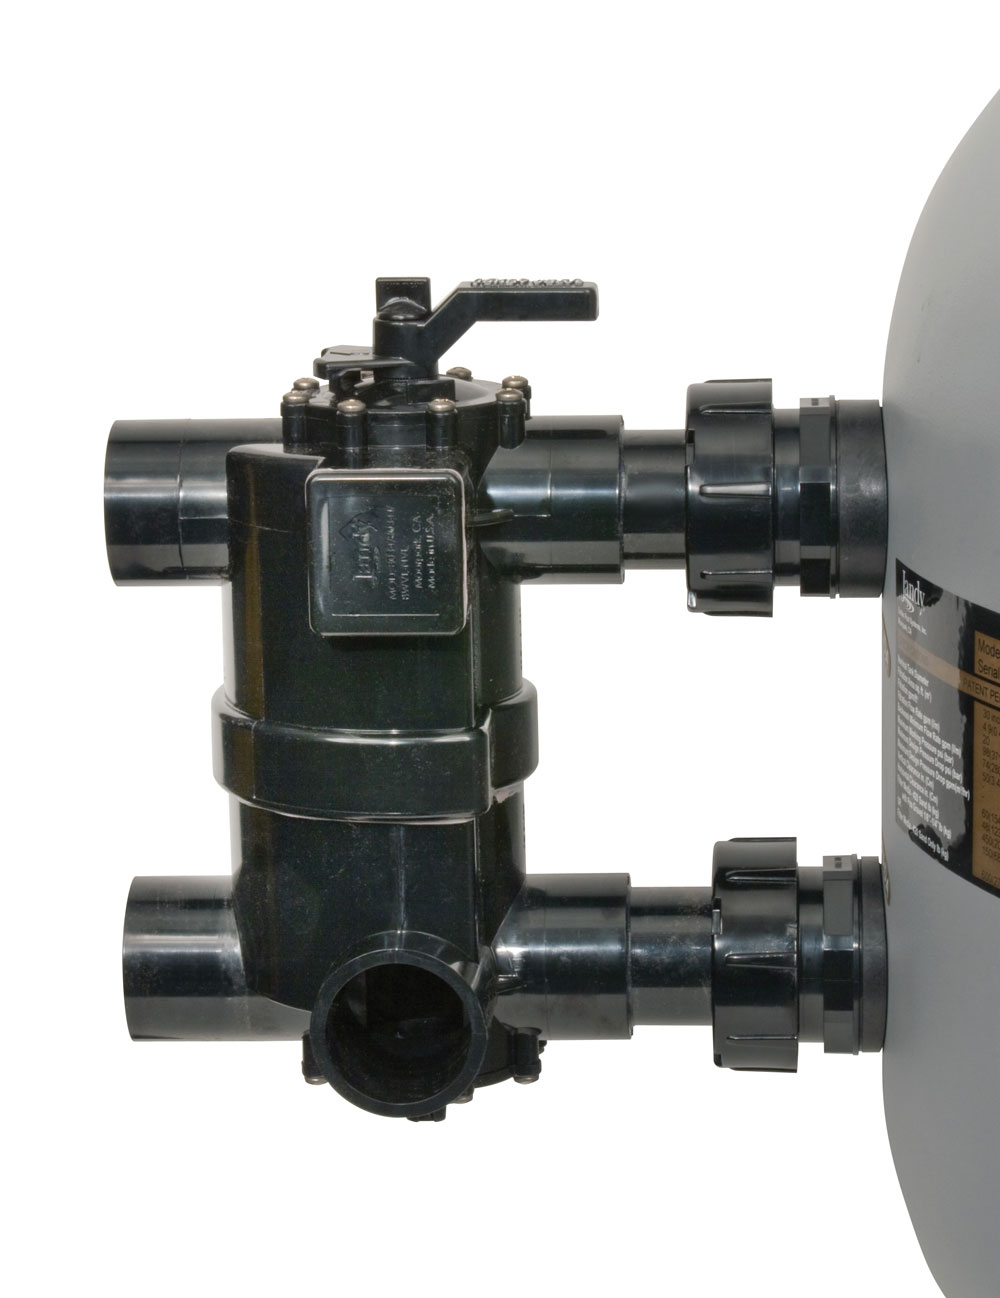 Jandy Pro Series 2-in-1 Backwash Valve